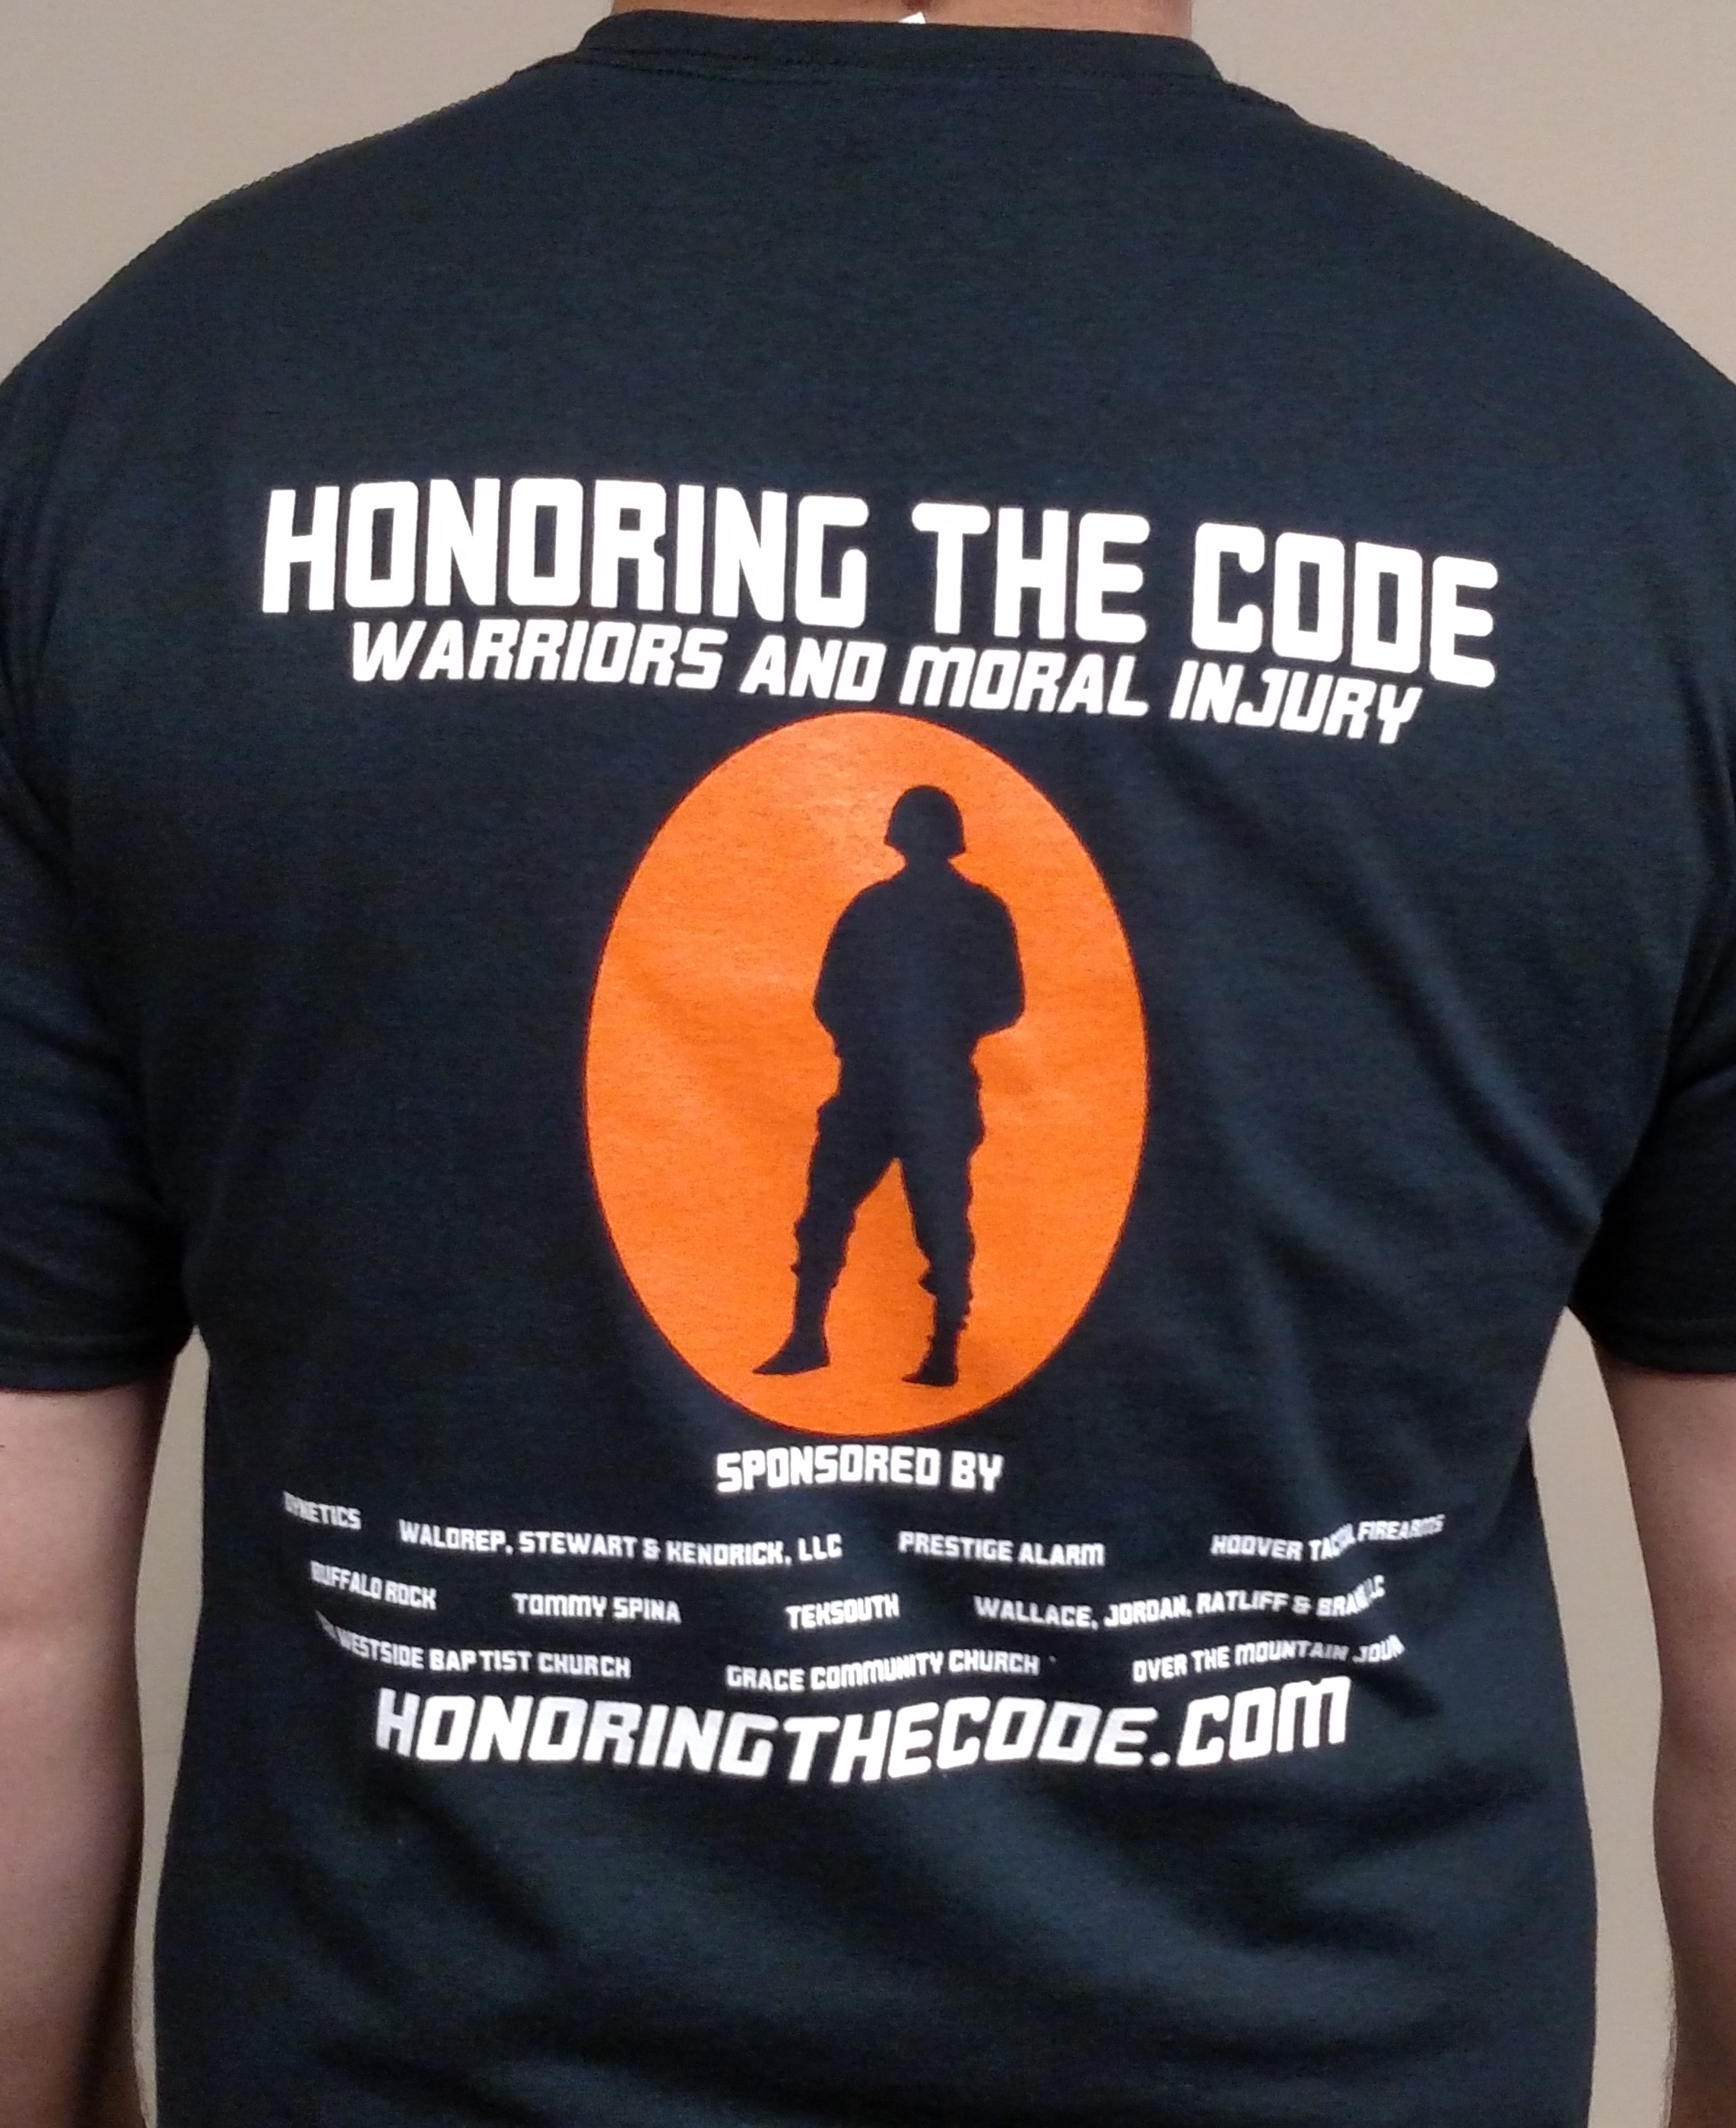 Honoring the Code T-Shirt Now just $10 USD! Includes S&H